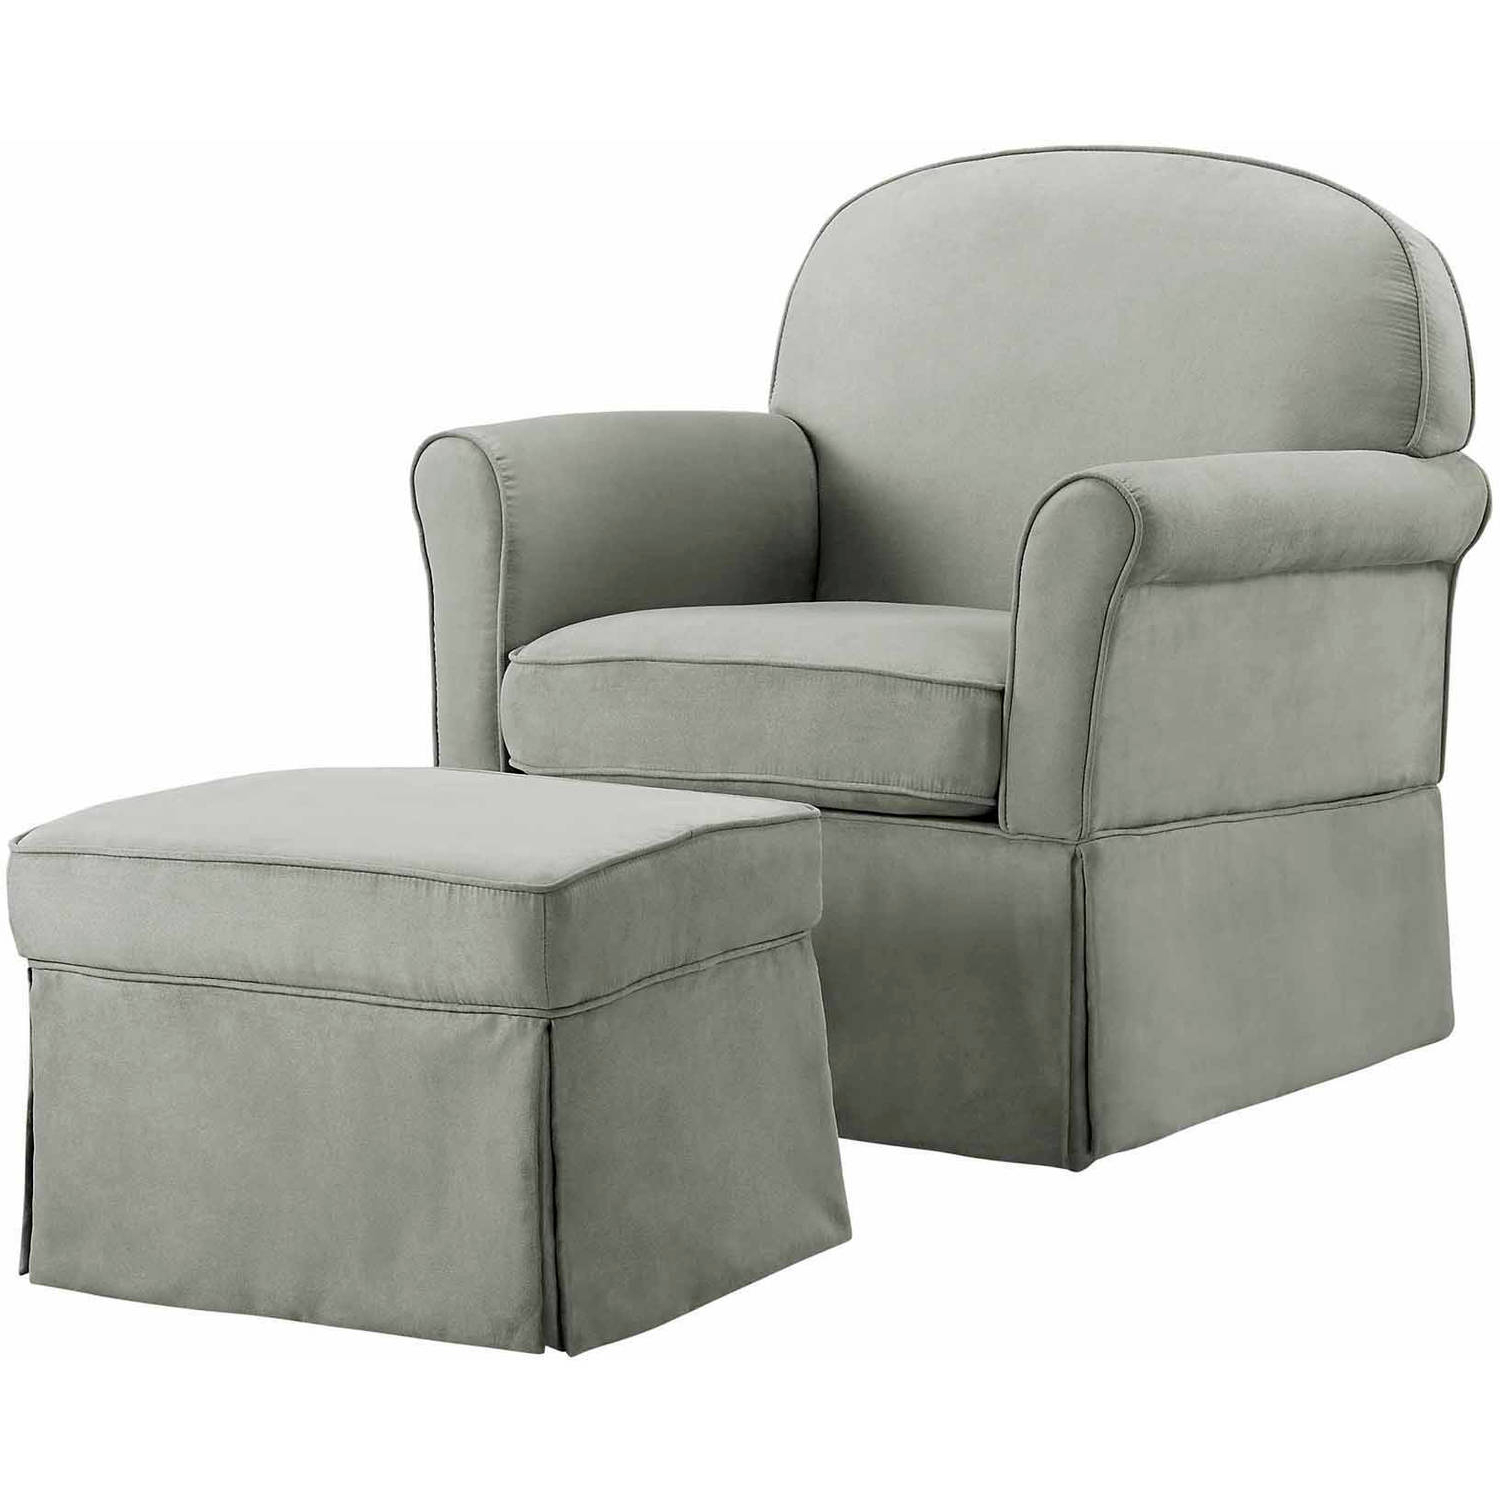 Baby Relax Evan Swivel Glider And Ottoman Gray – Walmart Inside Well Liked Abbey Swivel Glider Recliners (Gallery 4 of 20)